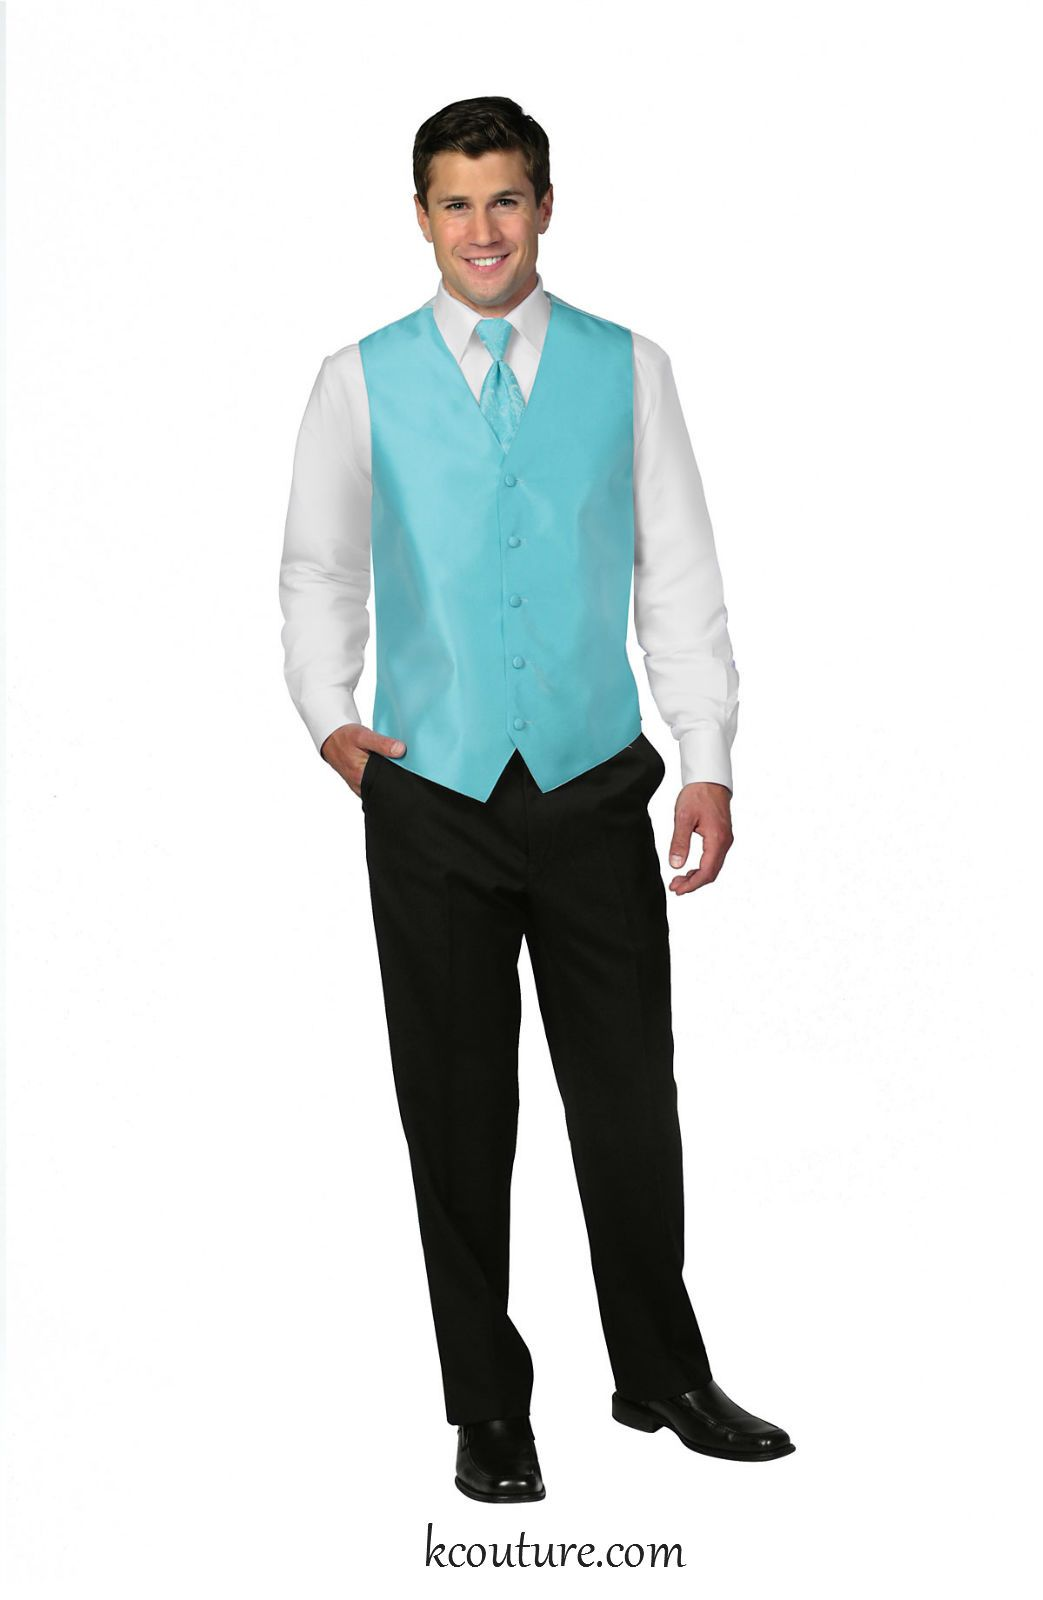 Mens\' deluxe satin vest and tie in sky blue - kcouture.com   Bridal ...